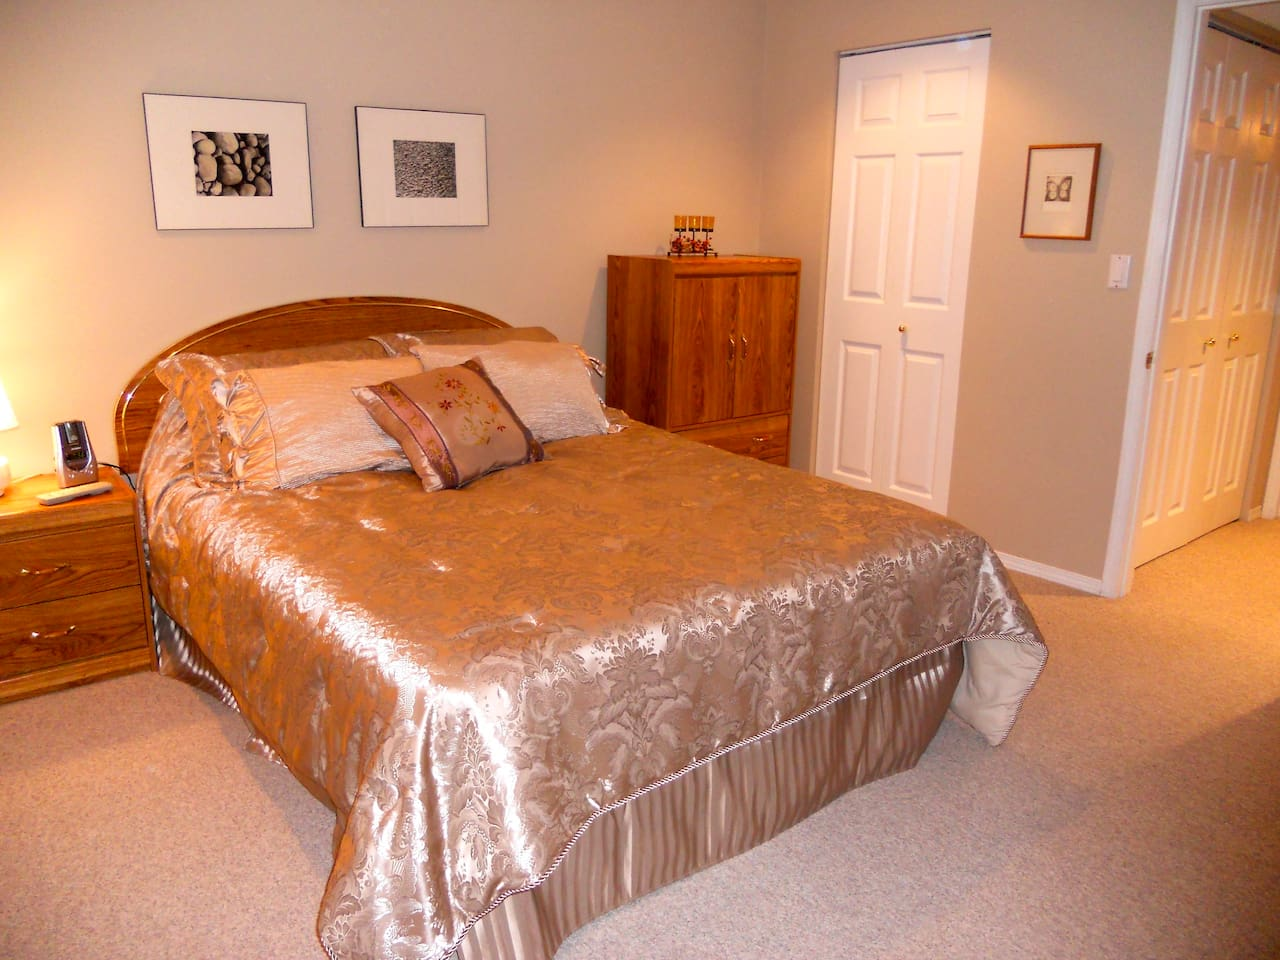 Queen bed in private room with bathroom next door